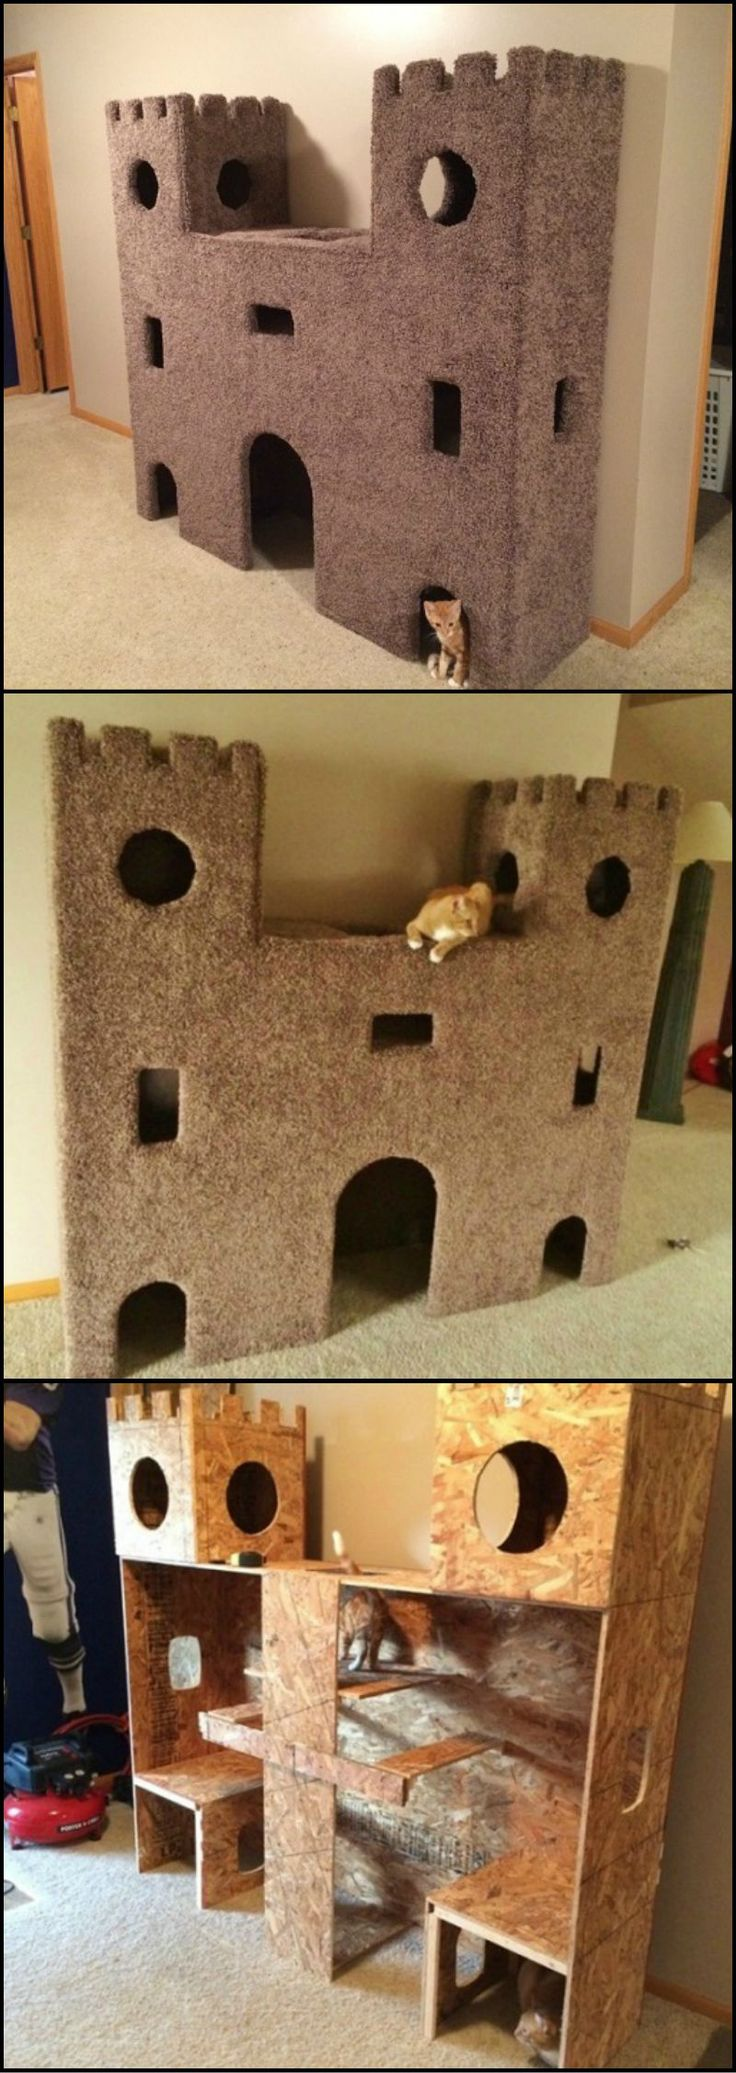 We found the ultimate cat castle! This is a great idea to keep our indoor cats bus